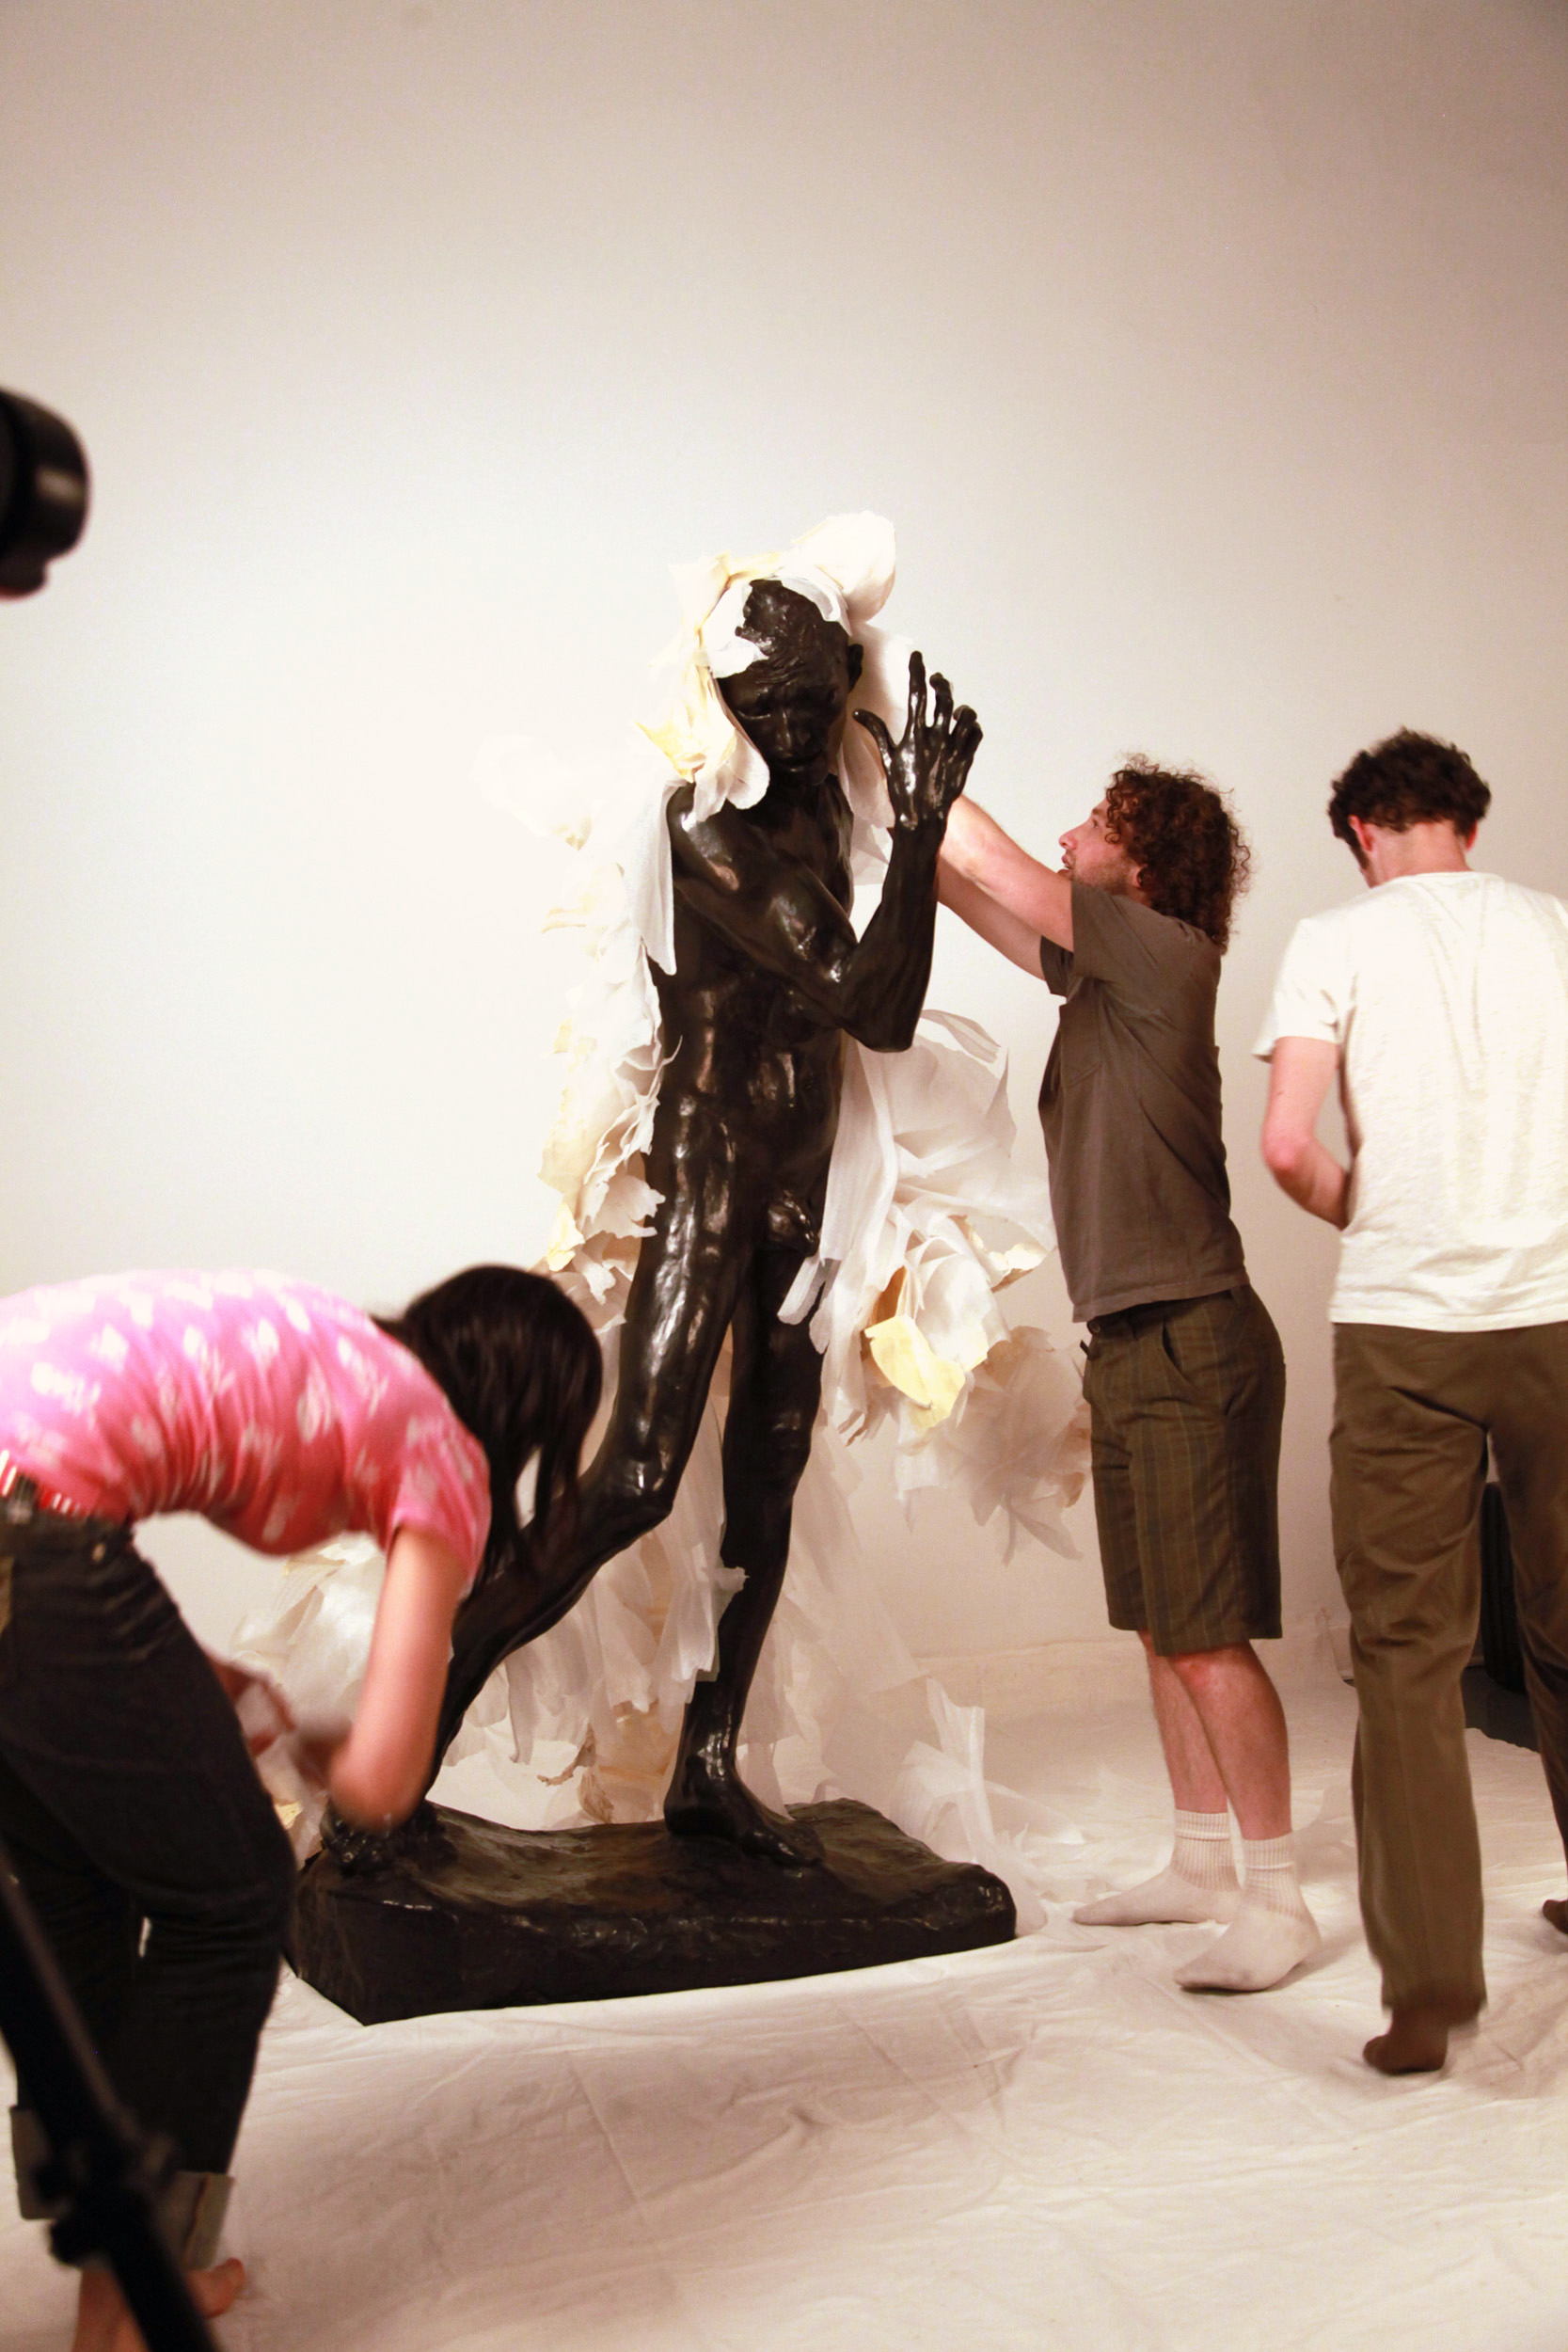 2010_Unwrapping_Rodin_Making_Of_05.jpg